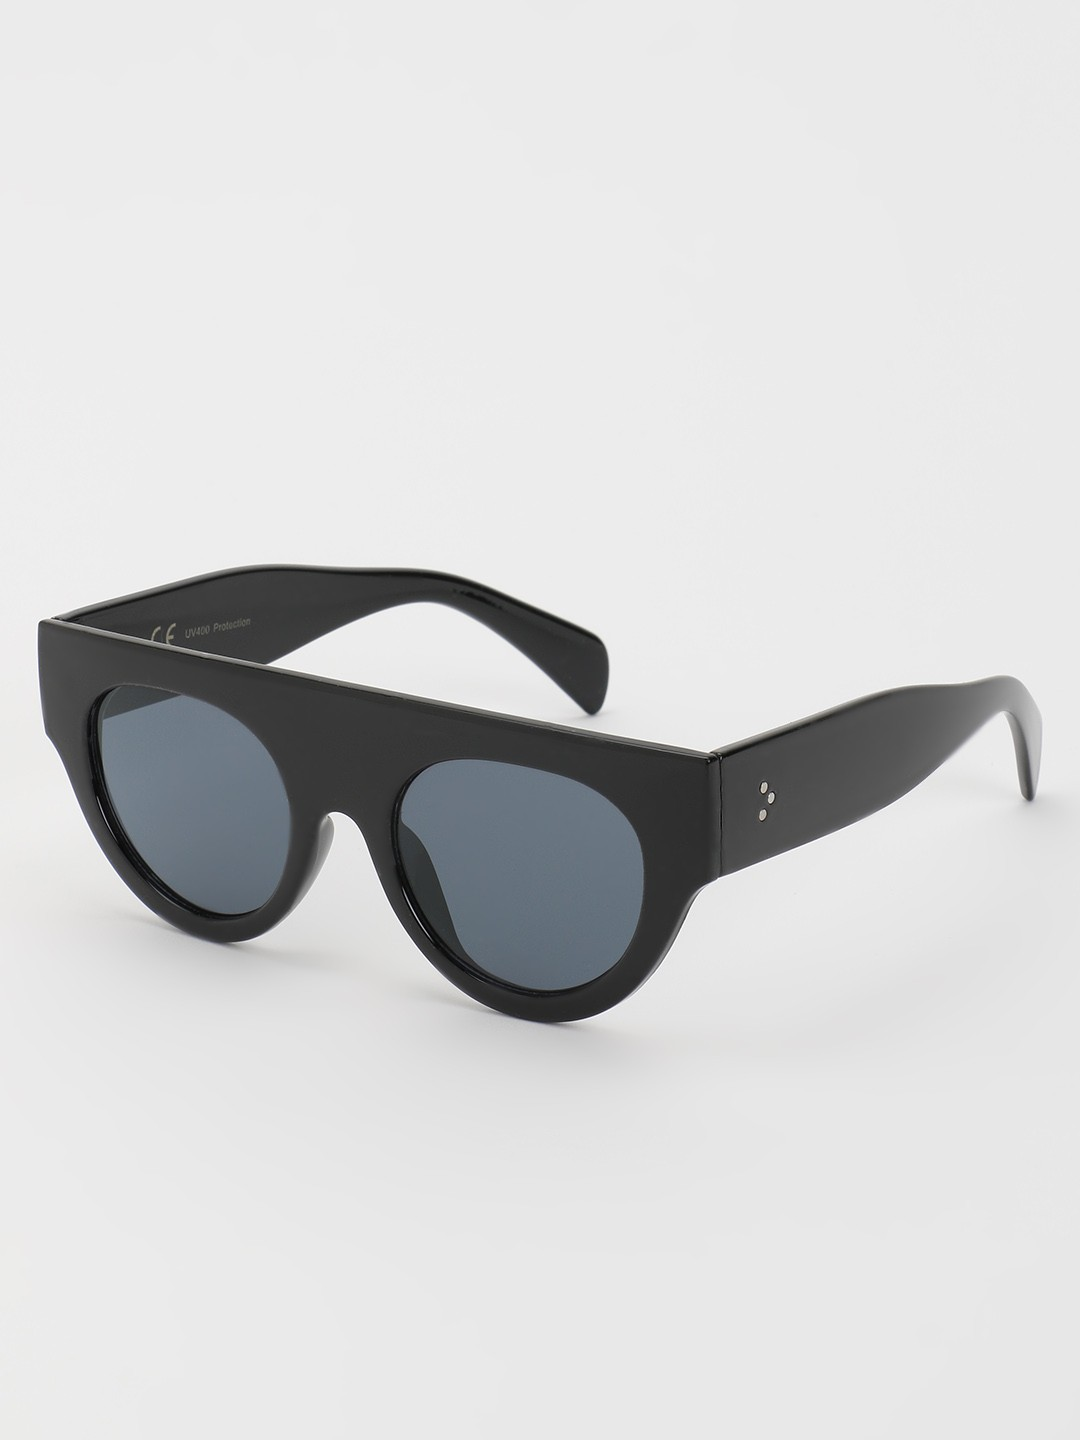 KOOVS Black Tinted Lens Retro Sunglasses 1